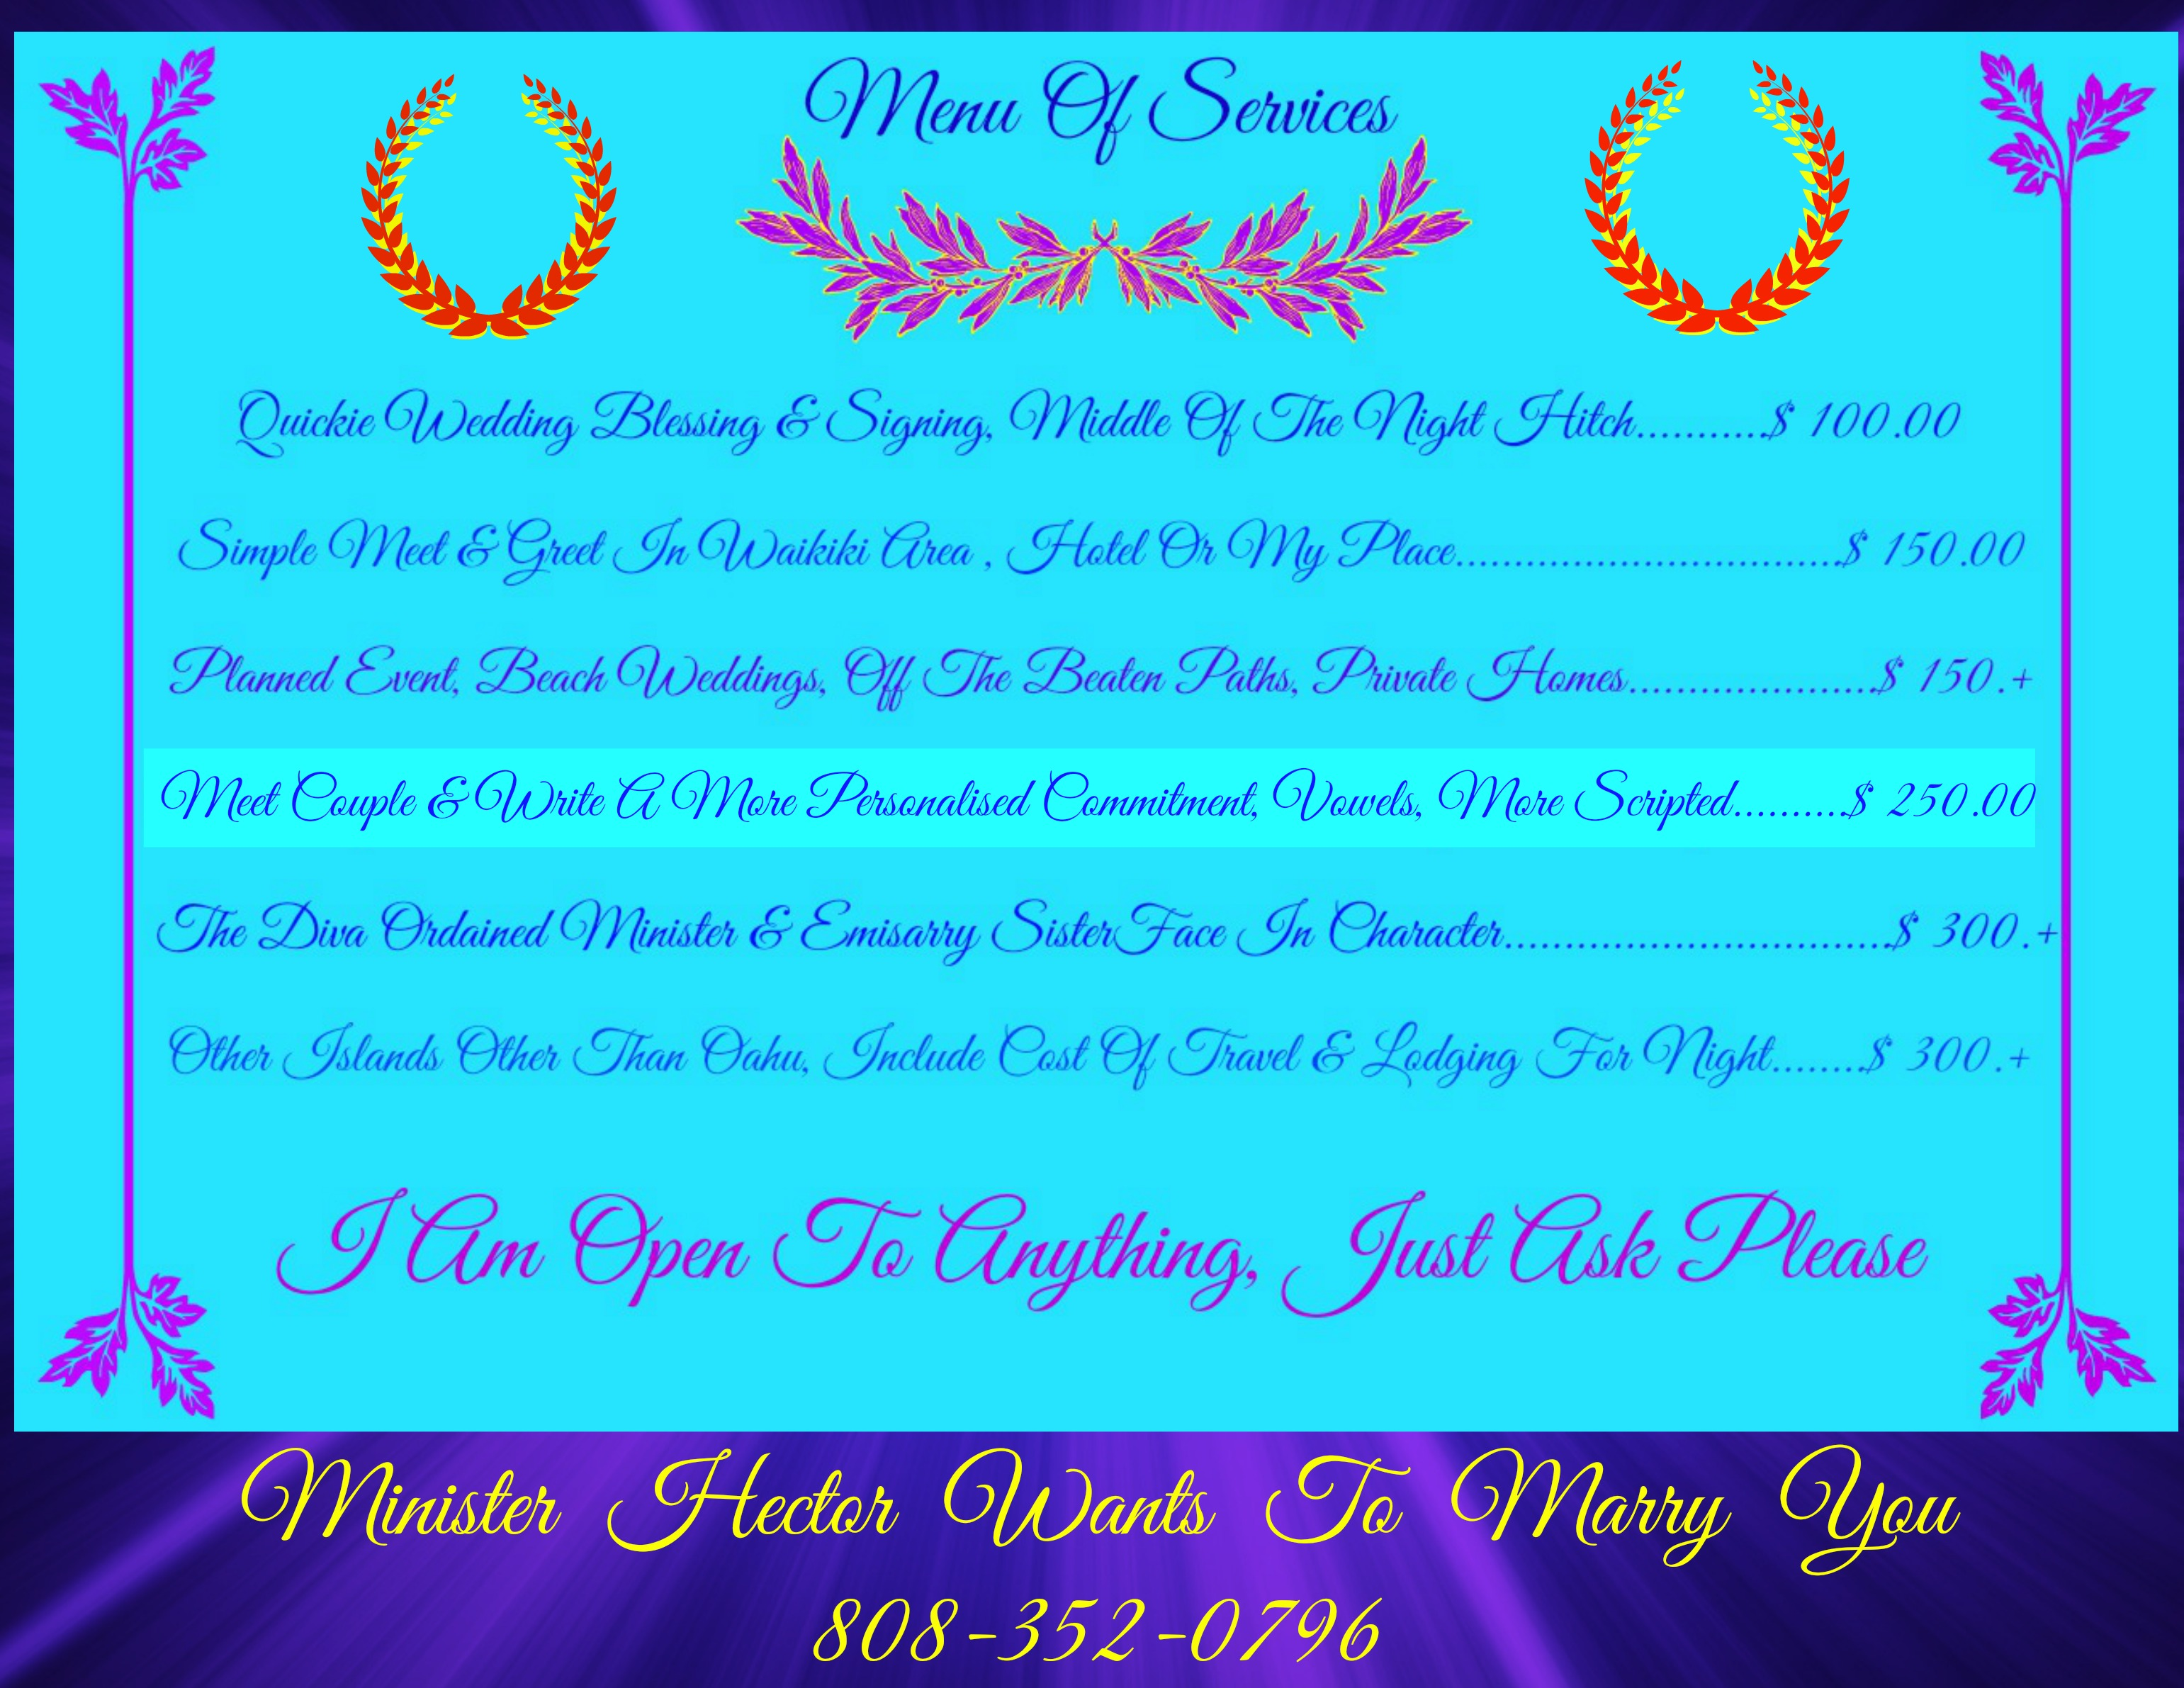 Ordained Minister H.R.H. Ordained Minister SisterFaces Pricing & Menu For Wedding Officiant Services